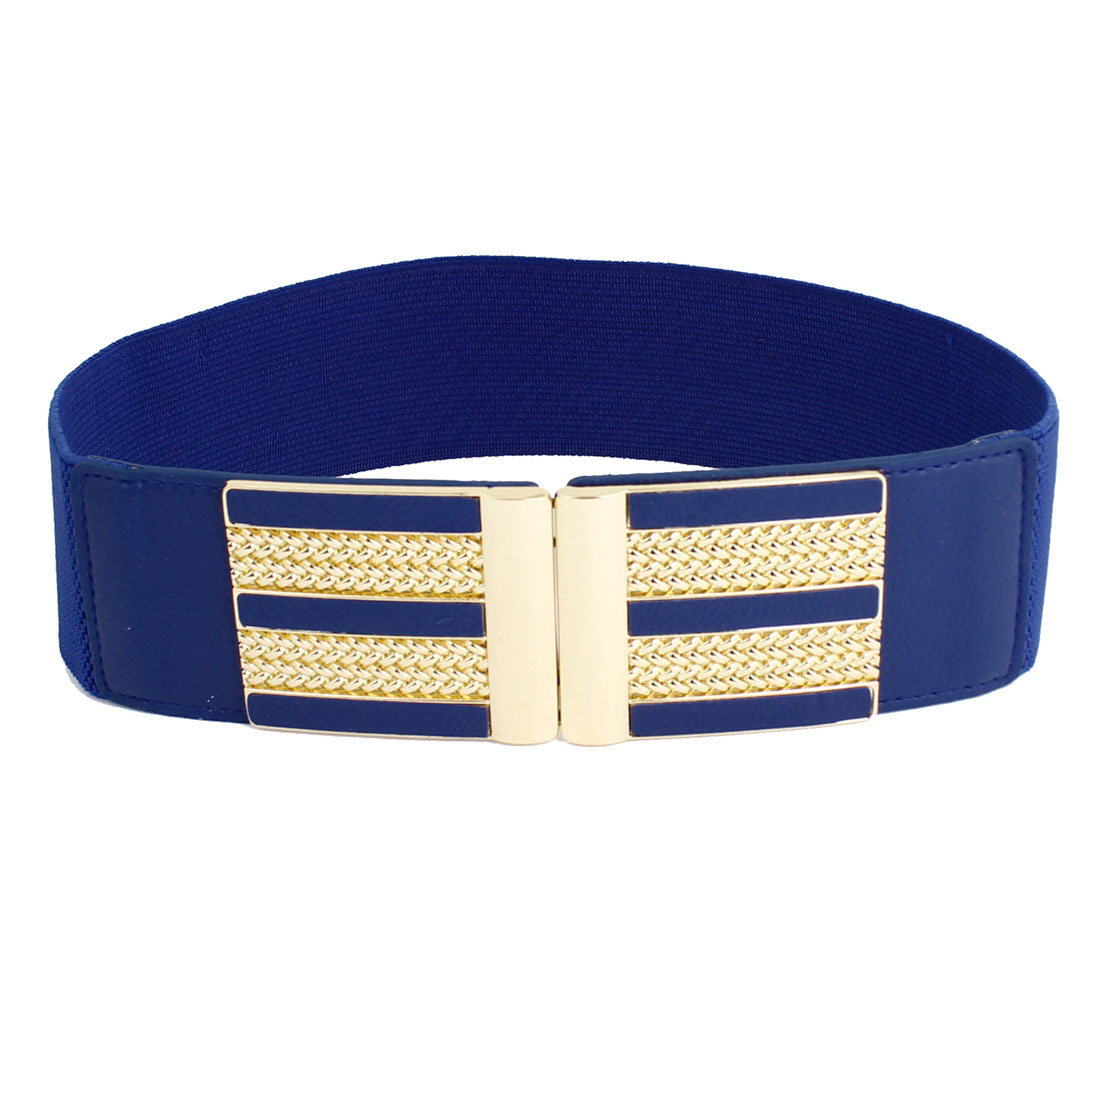 Women Metal Interlocking Buckle Stretchy Waistband Belt Decor 6cm Width Blue